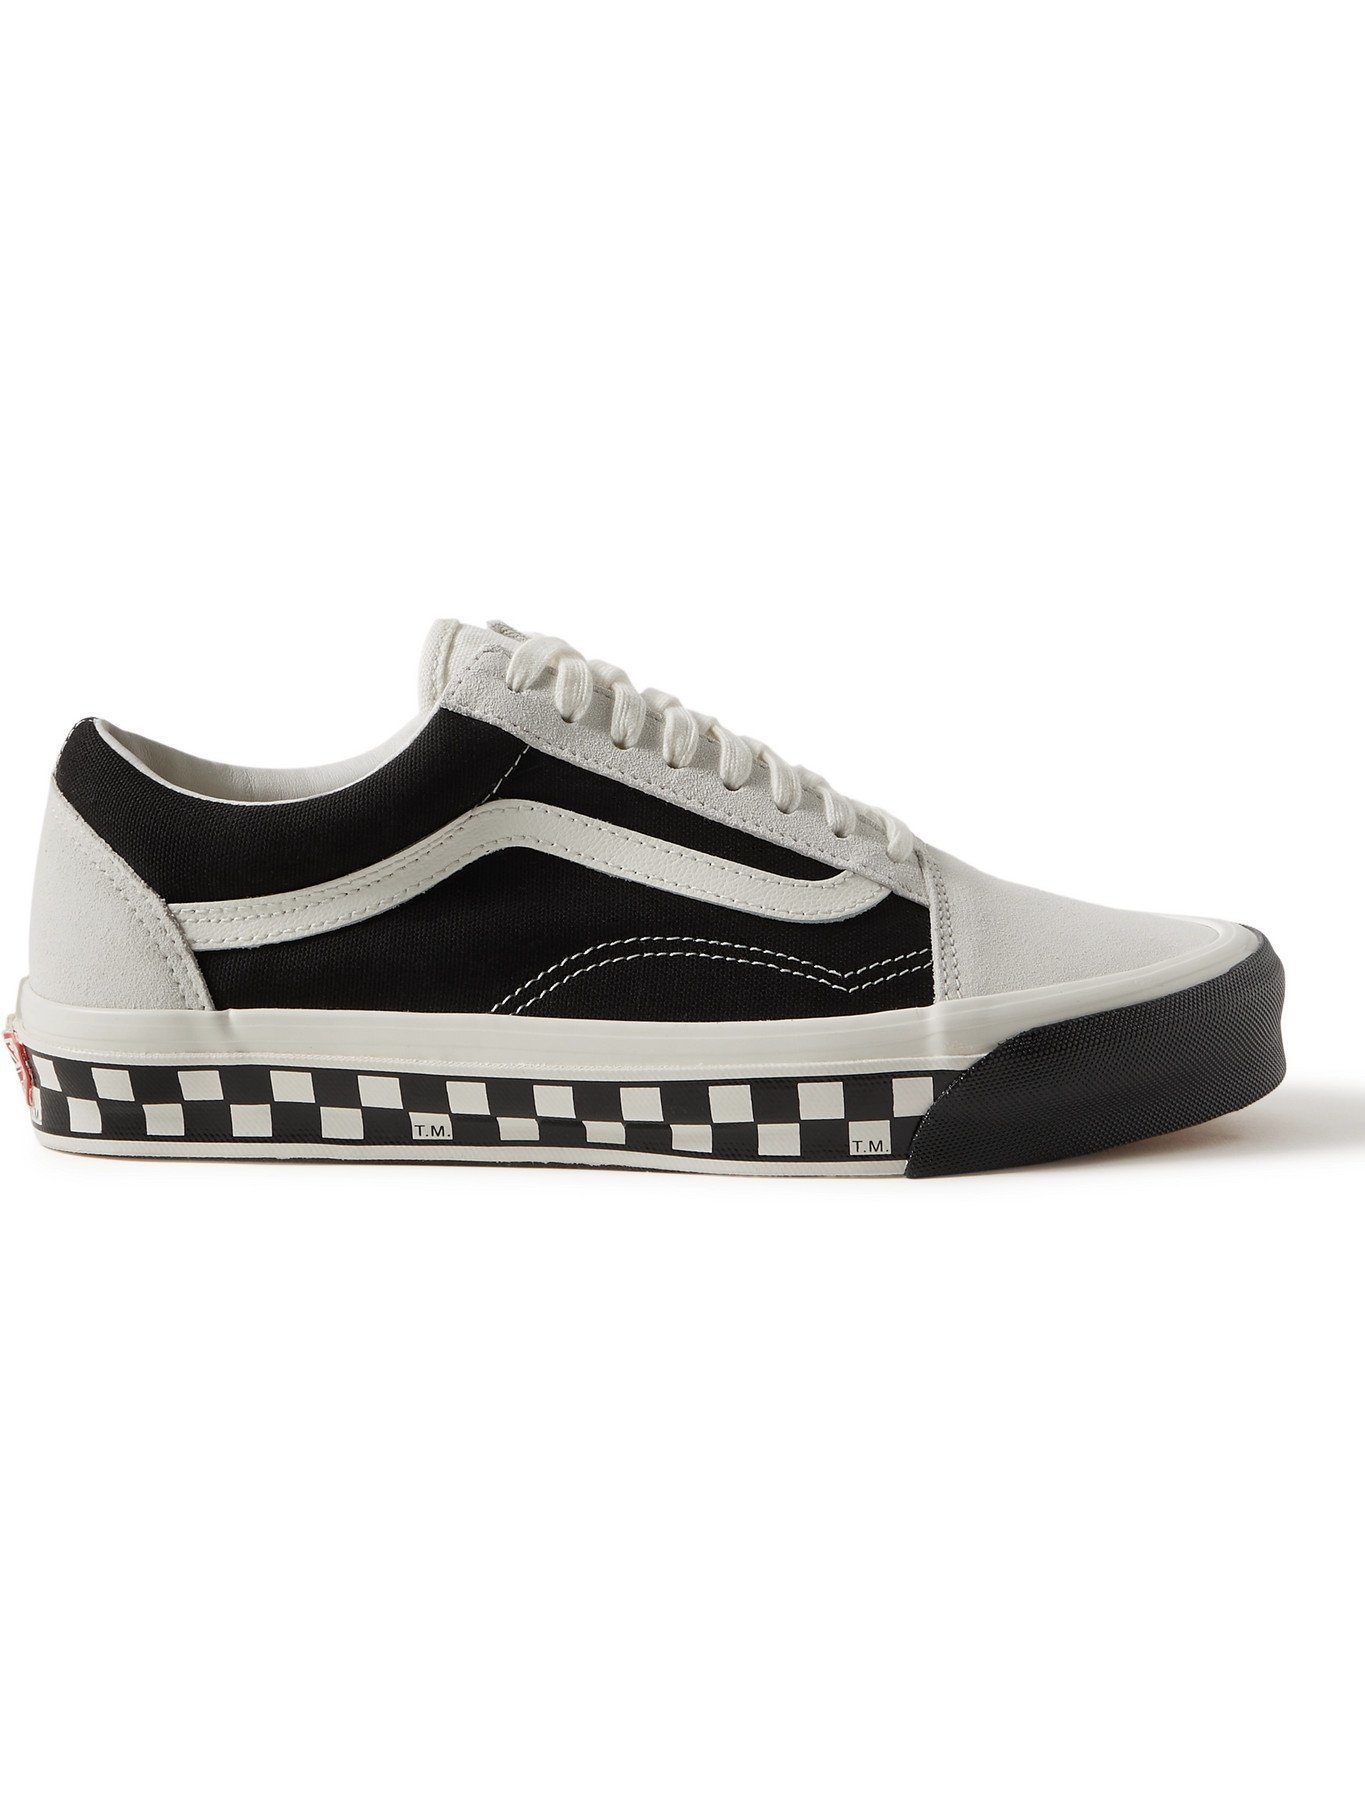 Photo: Vans - UA OG Old Skool LX Bumper Cars Leather-Trimmed Canvas and Suede Sneakers - White - UK 5